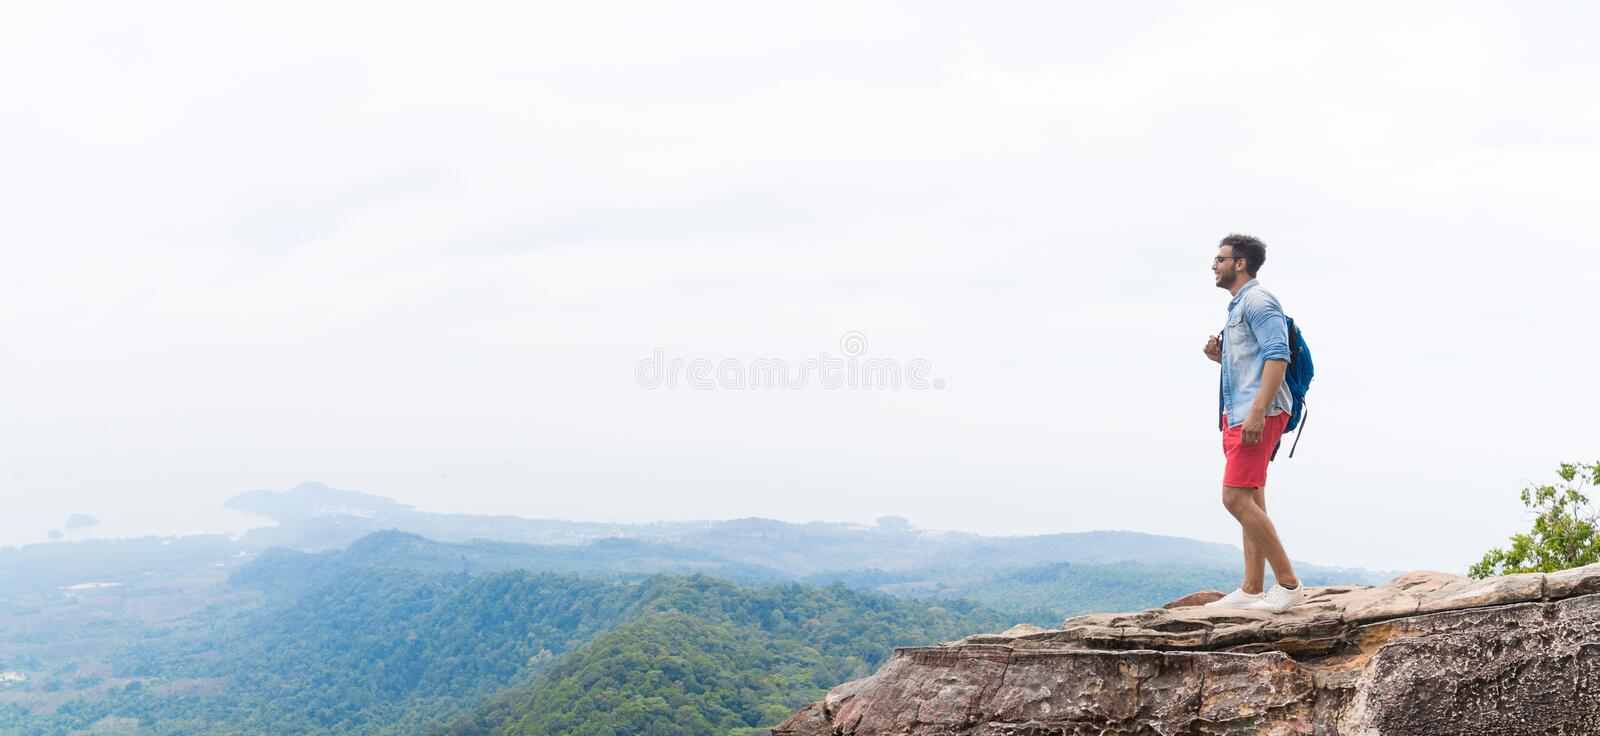 Man On Mountain Peak Raising Hands With Backpacks Enjoy Landscape Freedom Concept, Young Guy Tourist royalty free stock image